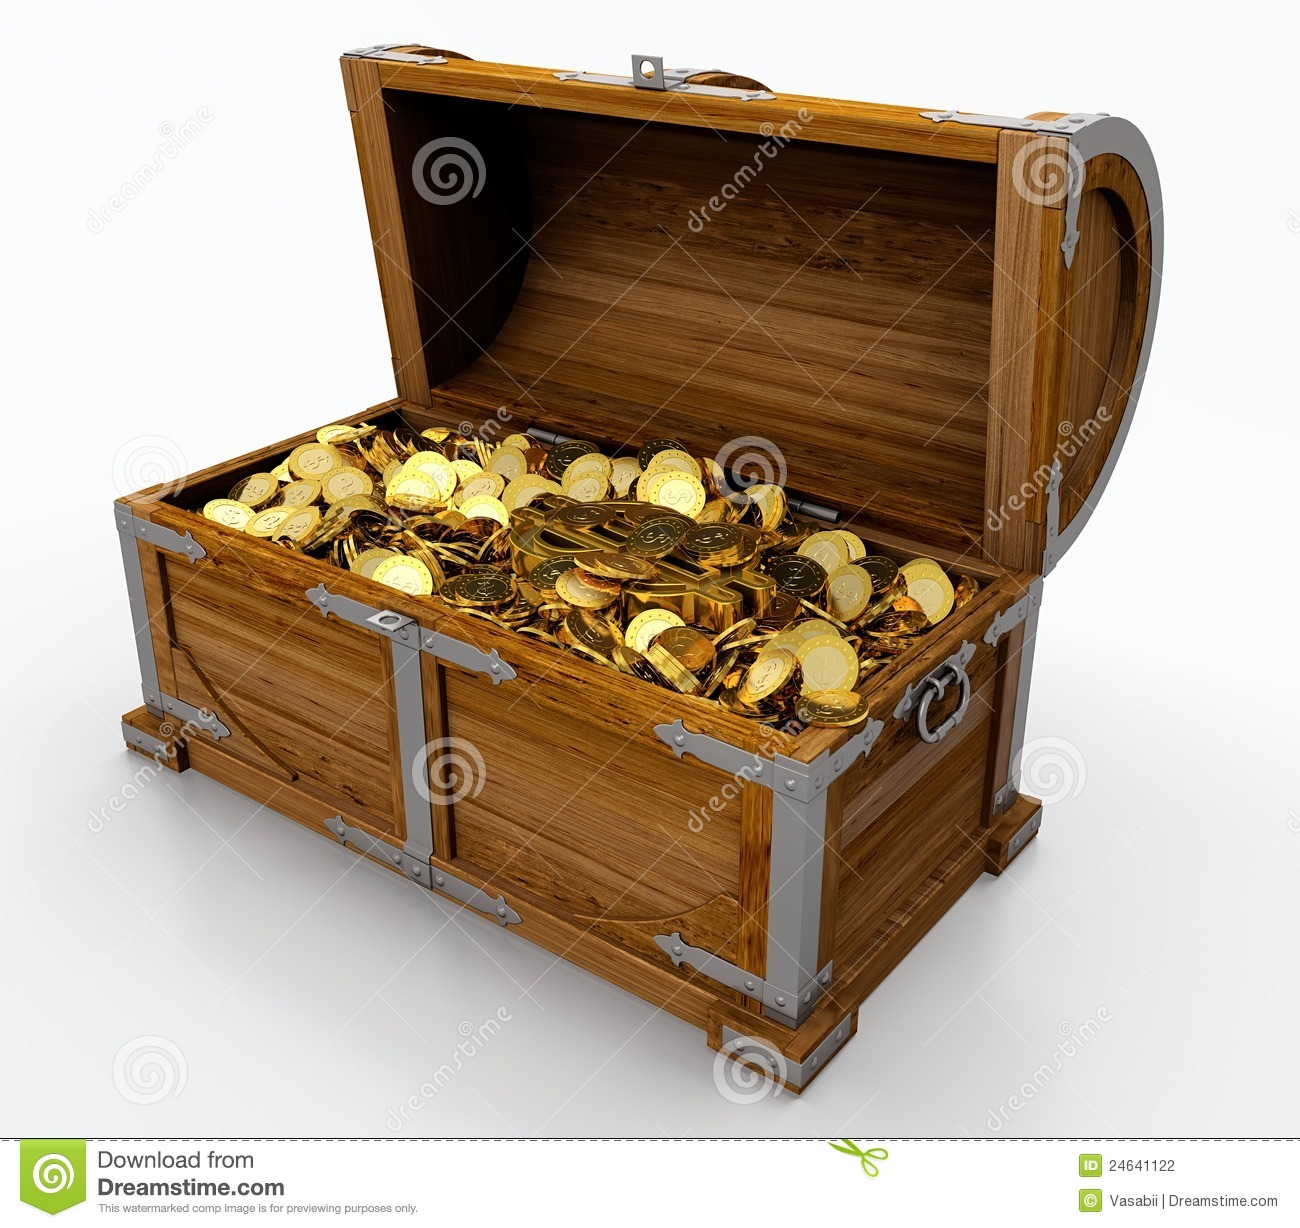 Treasure chest full of golden coins on white background.